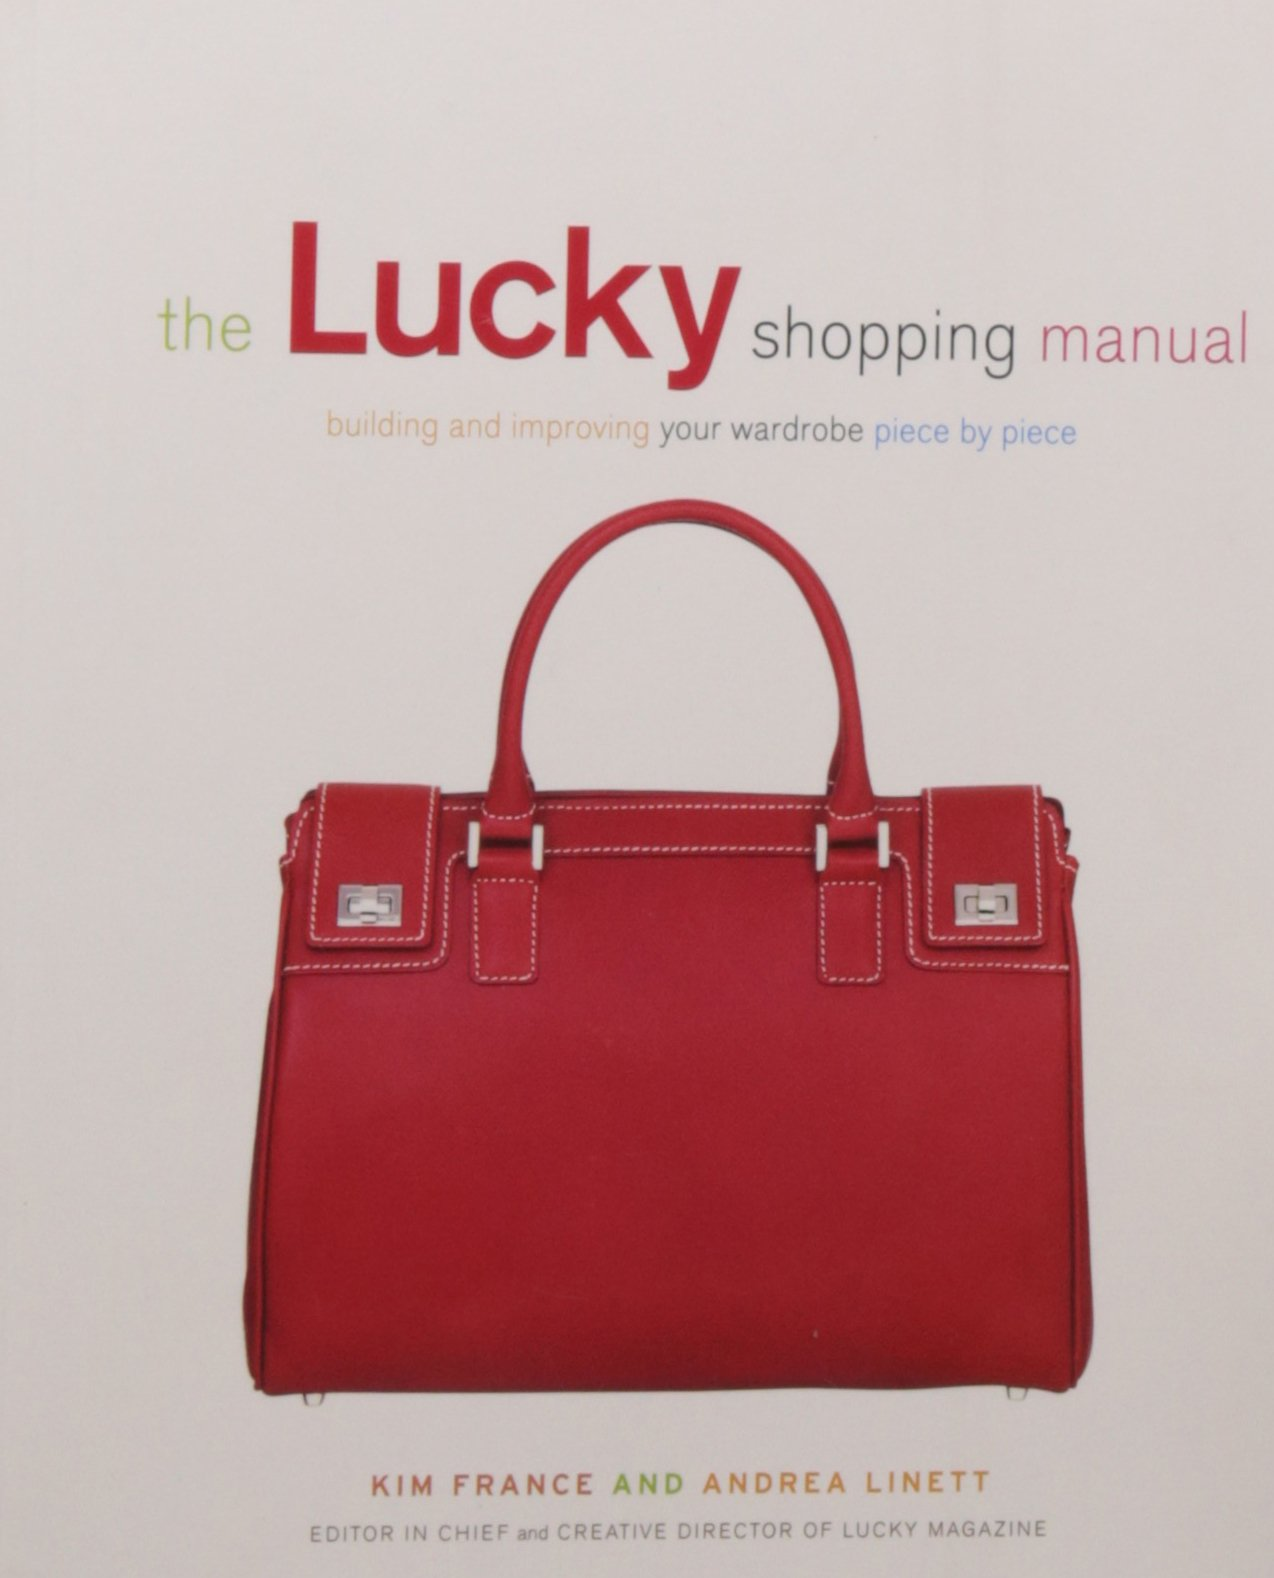 The lucky shopping manual building and improving your wardrobe the lucky shopping manual building and improving your wardrobe piece by piece andrea linett kim france 9781592400362 amazon books fandeluxe Image collections